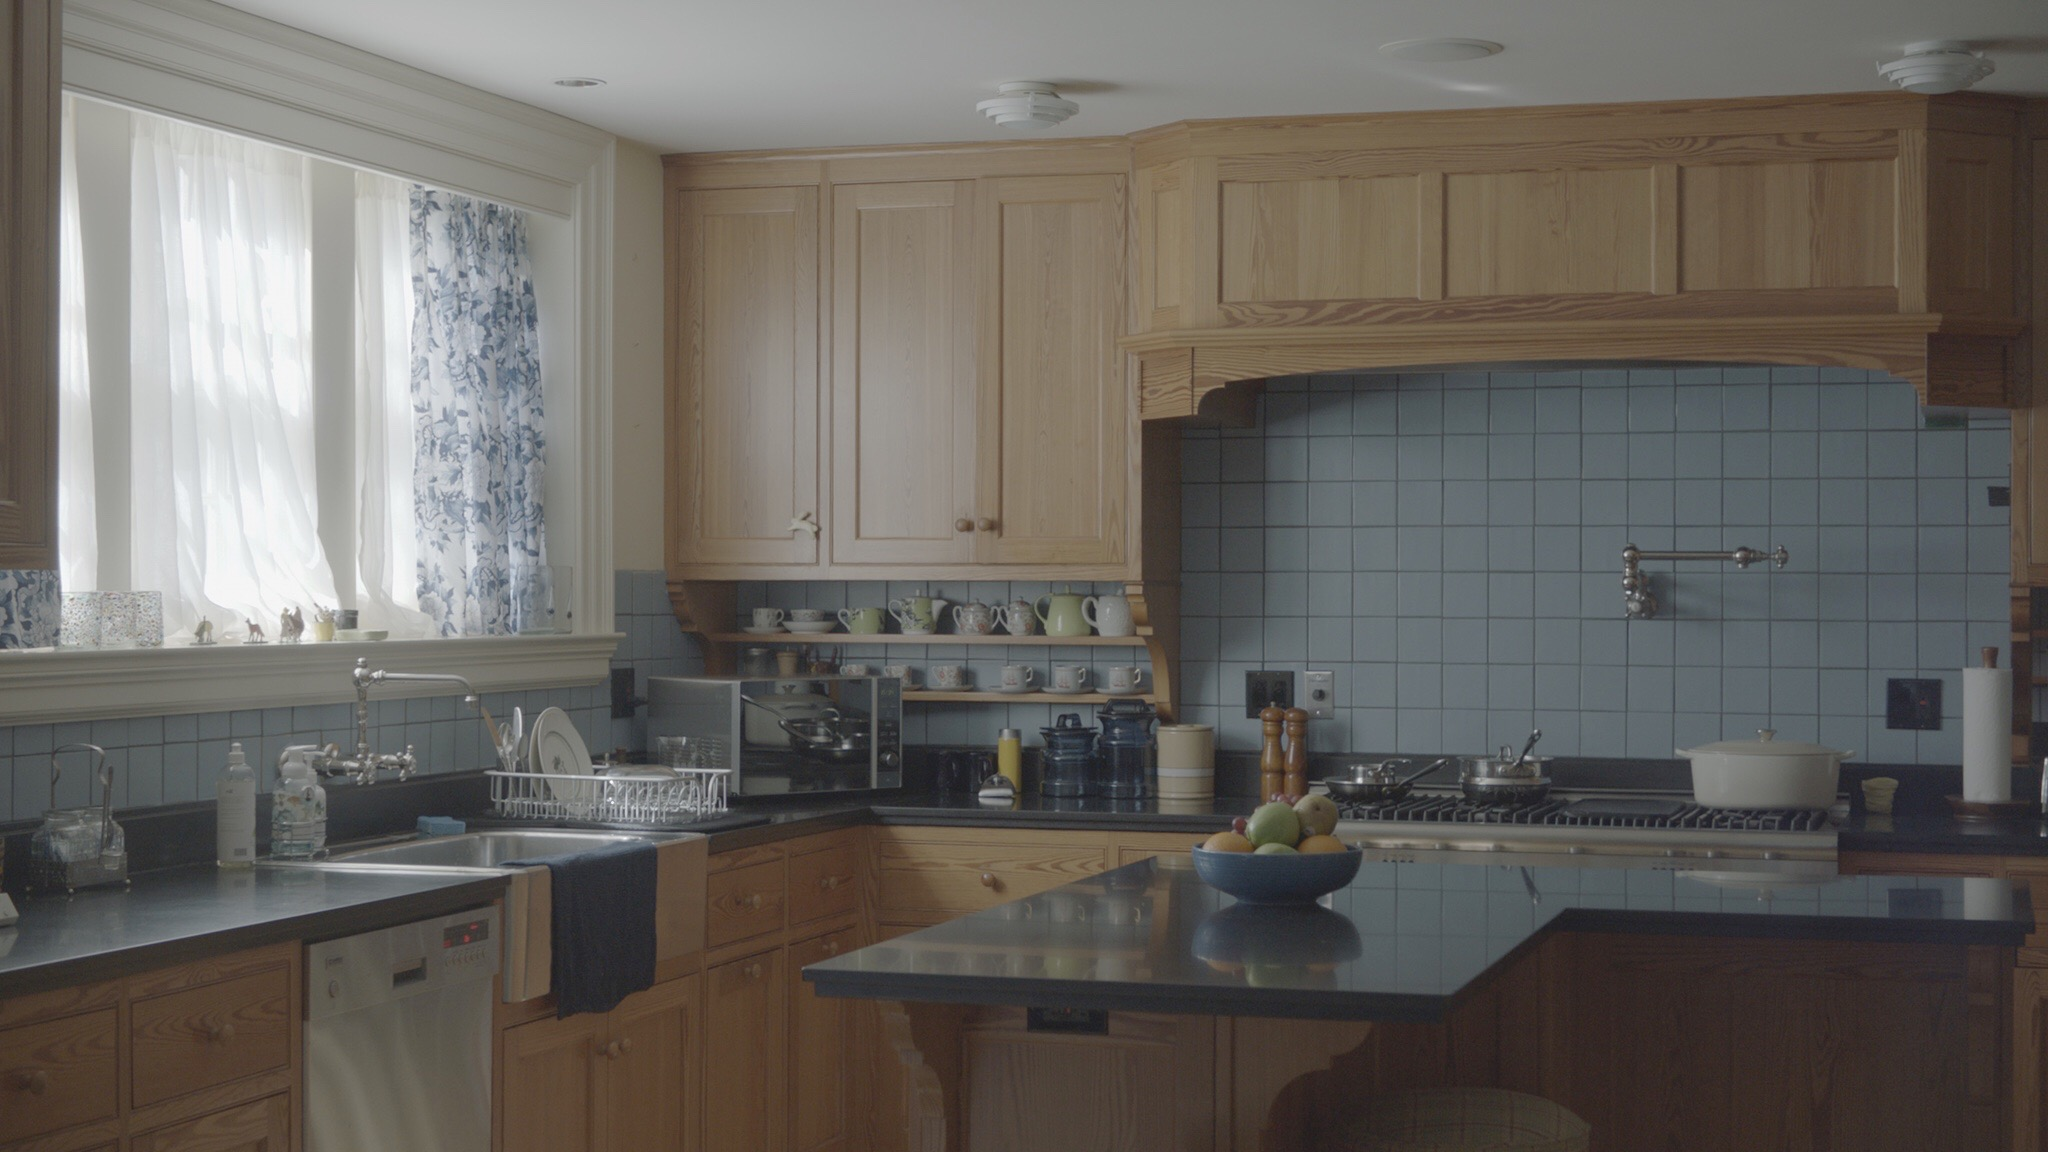 The kitchen ready for filming